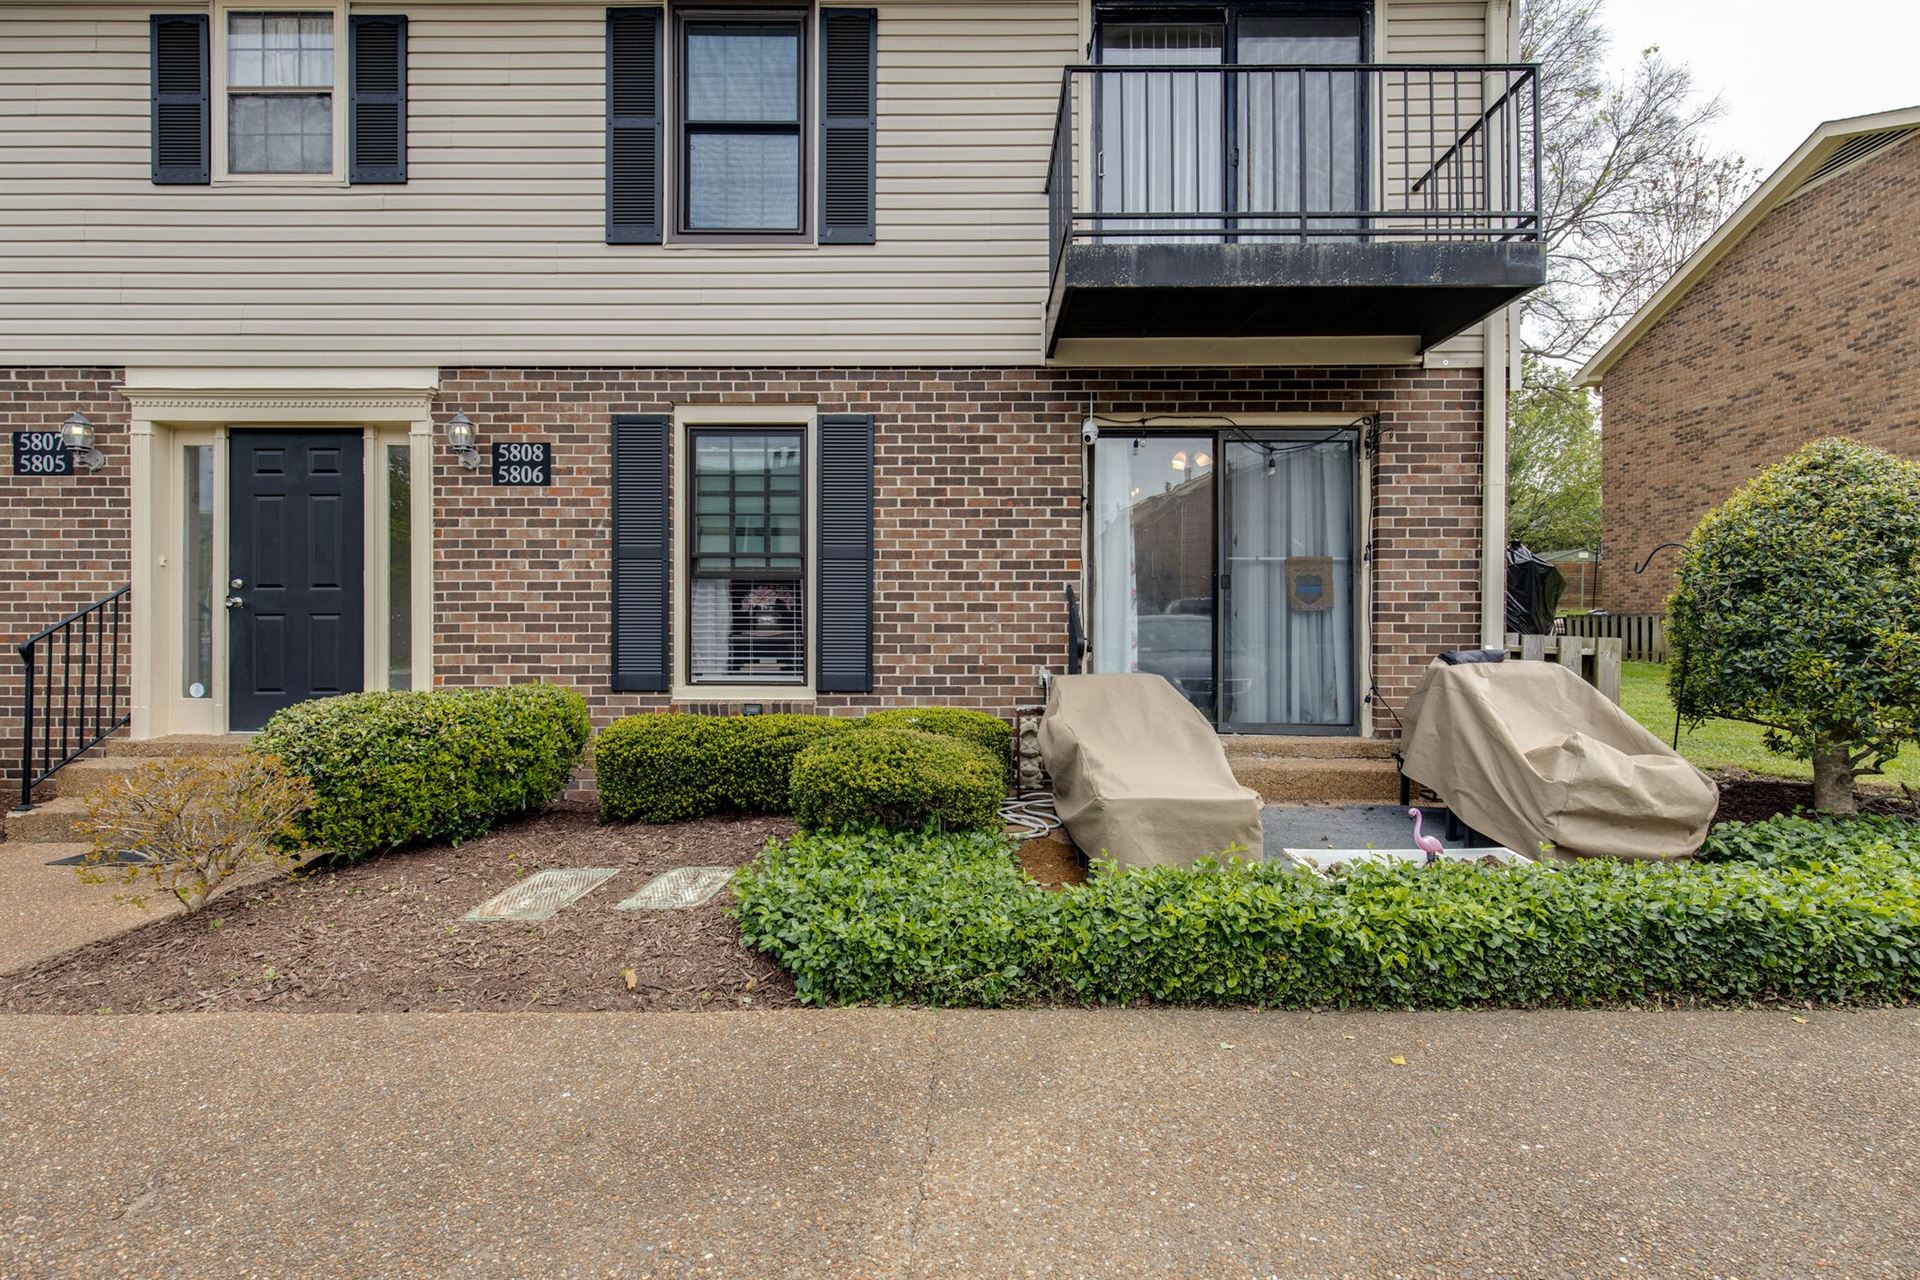 Photo of 5806 Brentwood Trce, Brentwood, TN 37027 (MLS # 2245689)